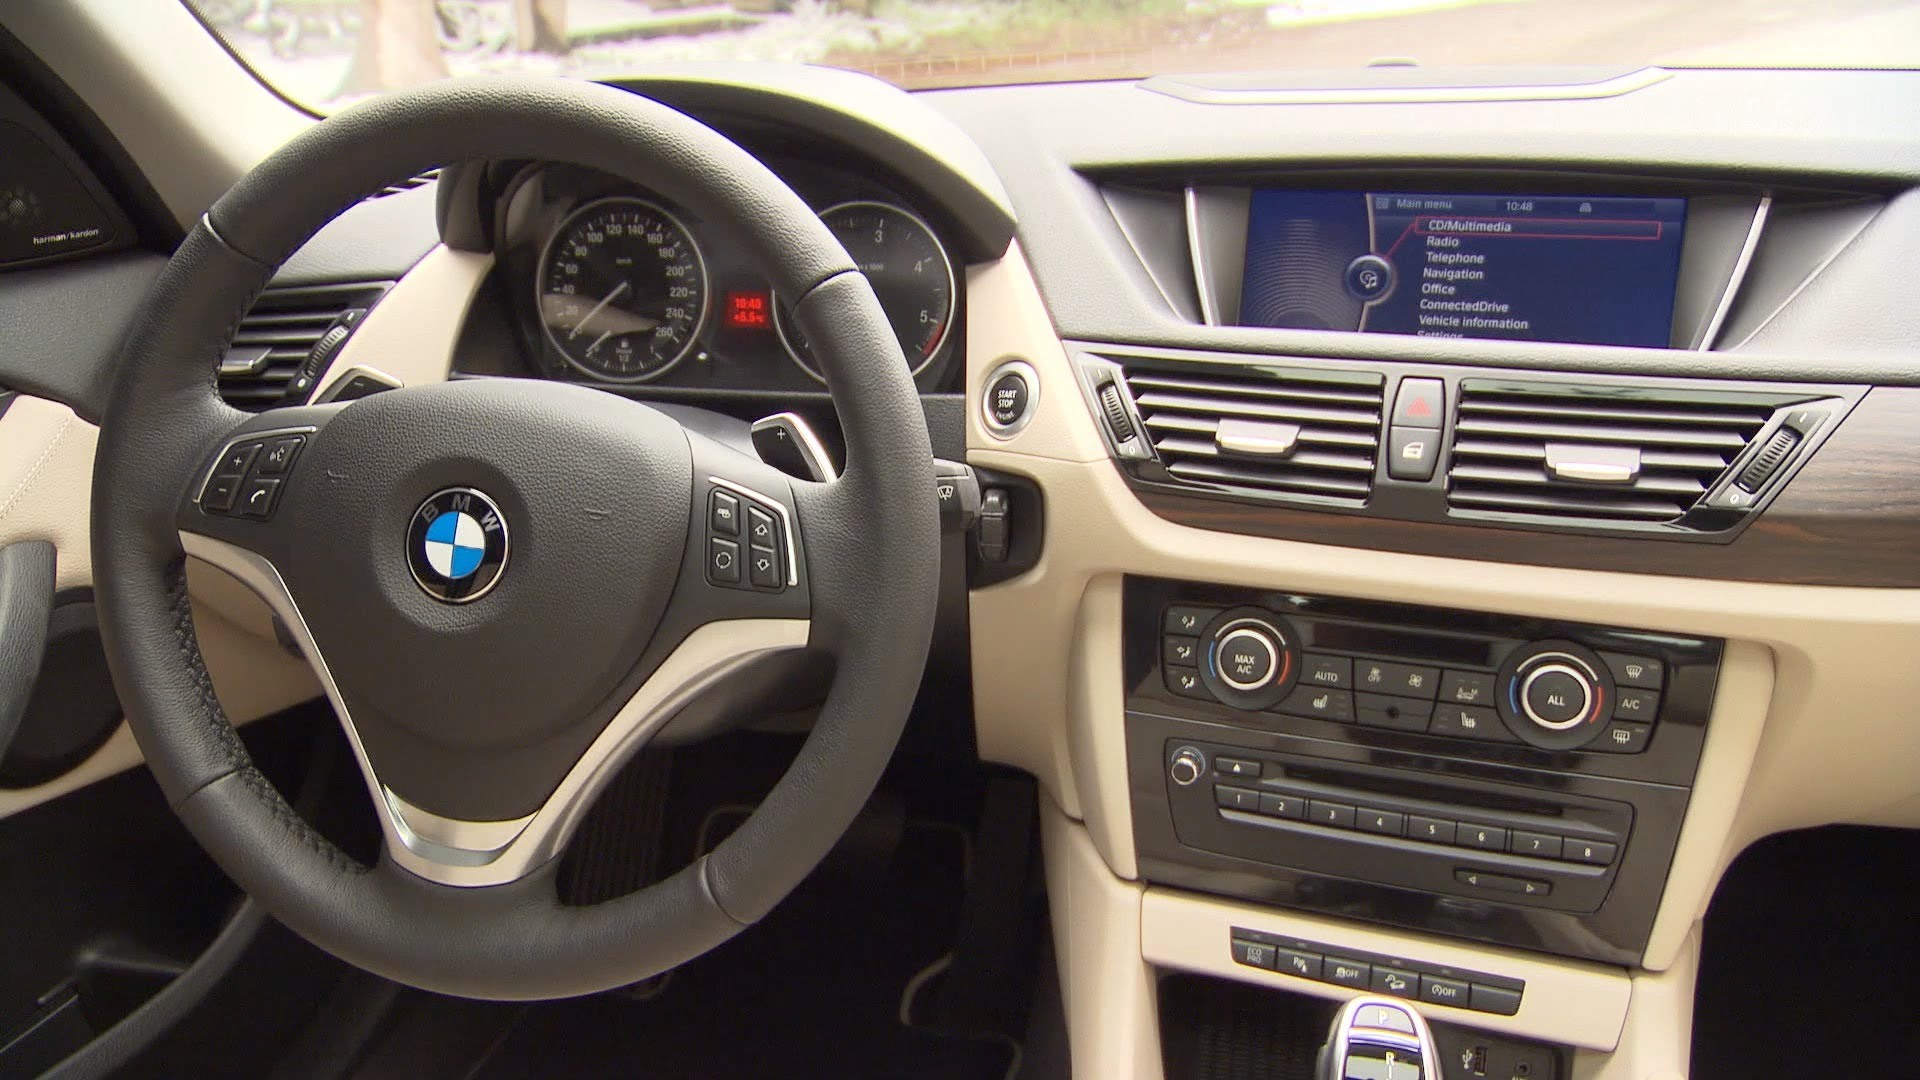 BMW X1 25d xLine 2012 - INTERIOR